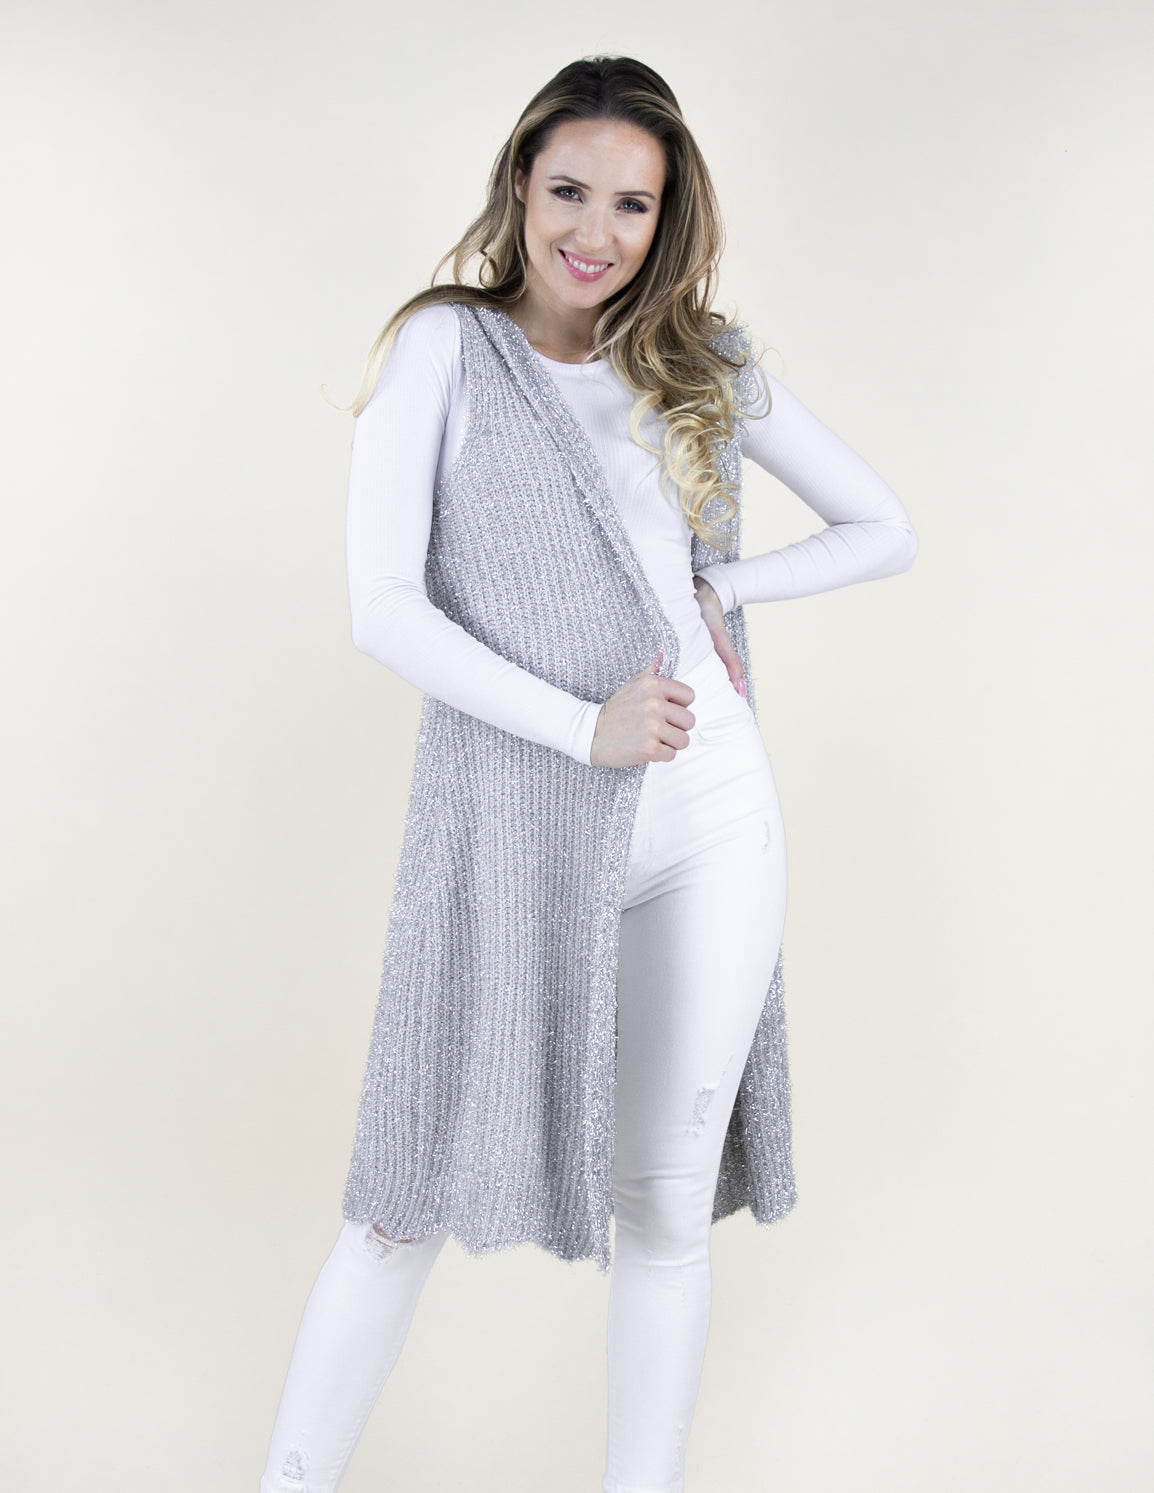 Silver Sparkle Me Lots Lurex Thread Long Vest with Hood and Scallop Bottom